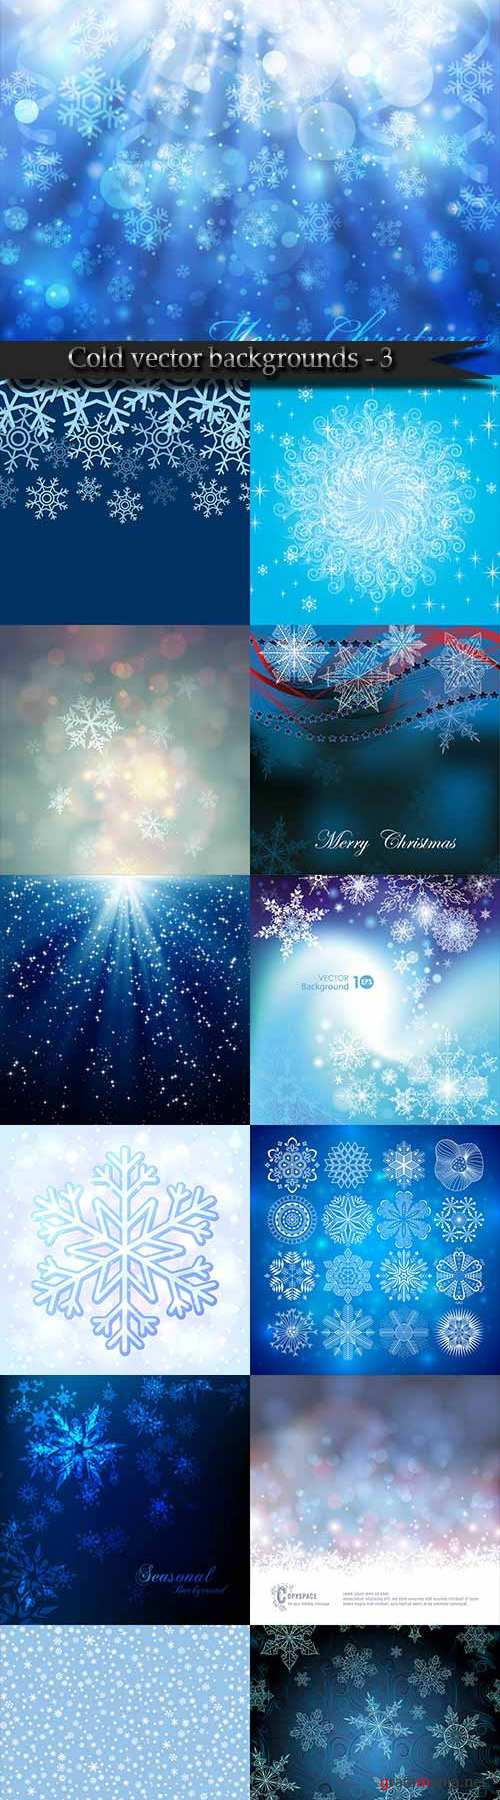 Cold vector backgrounds - 3